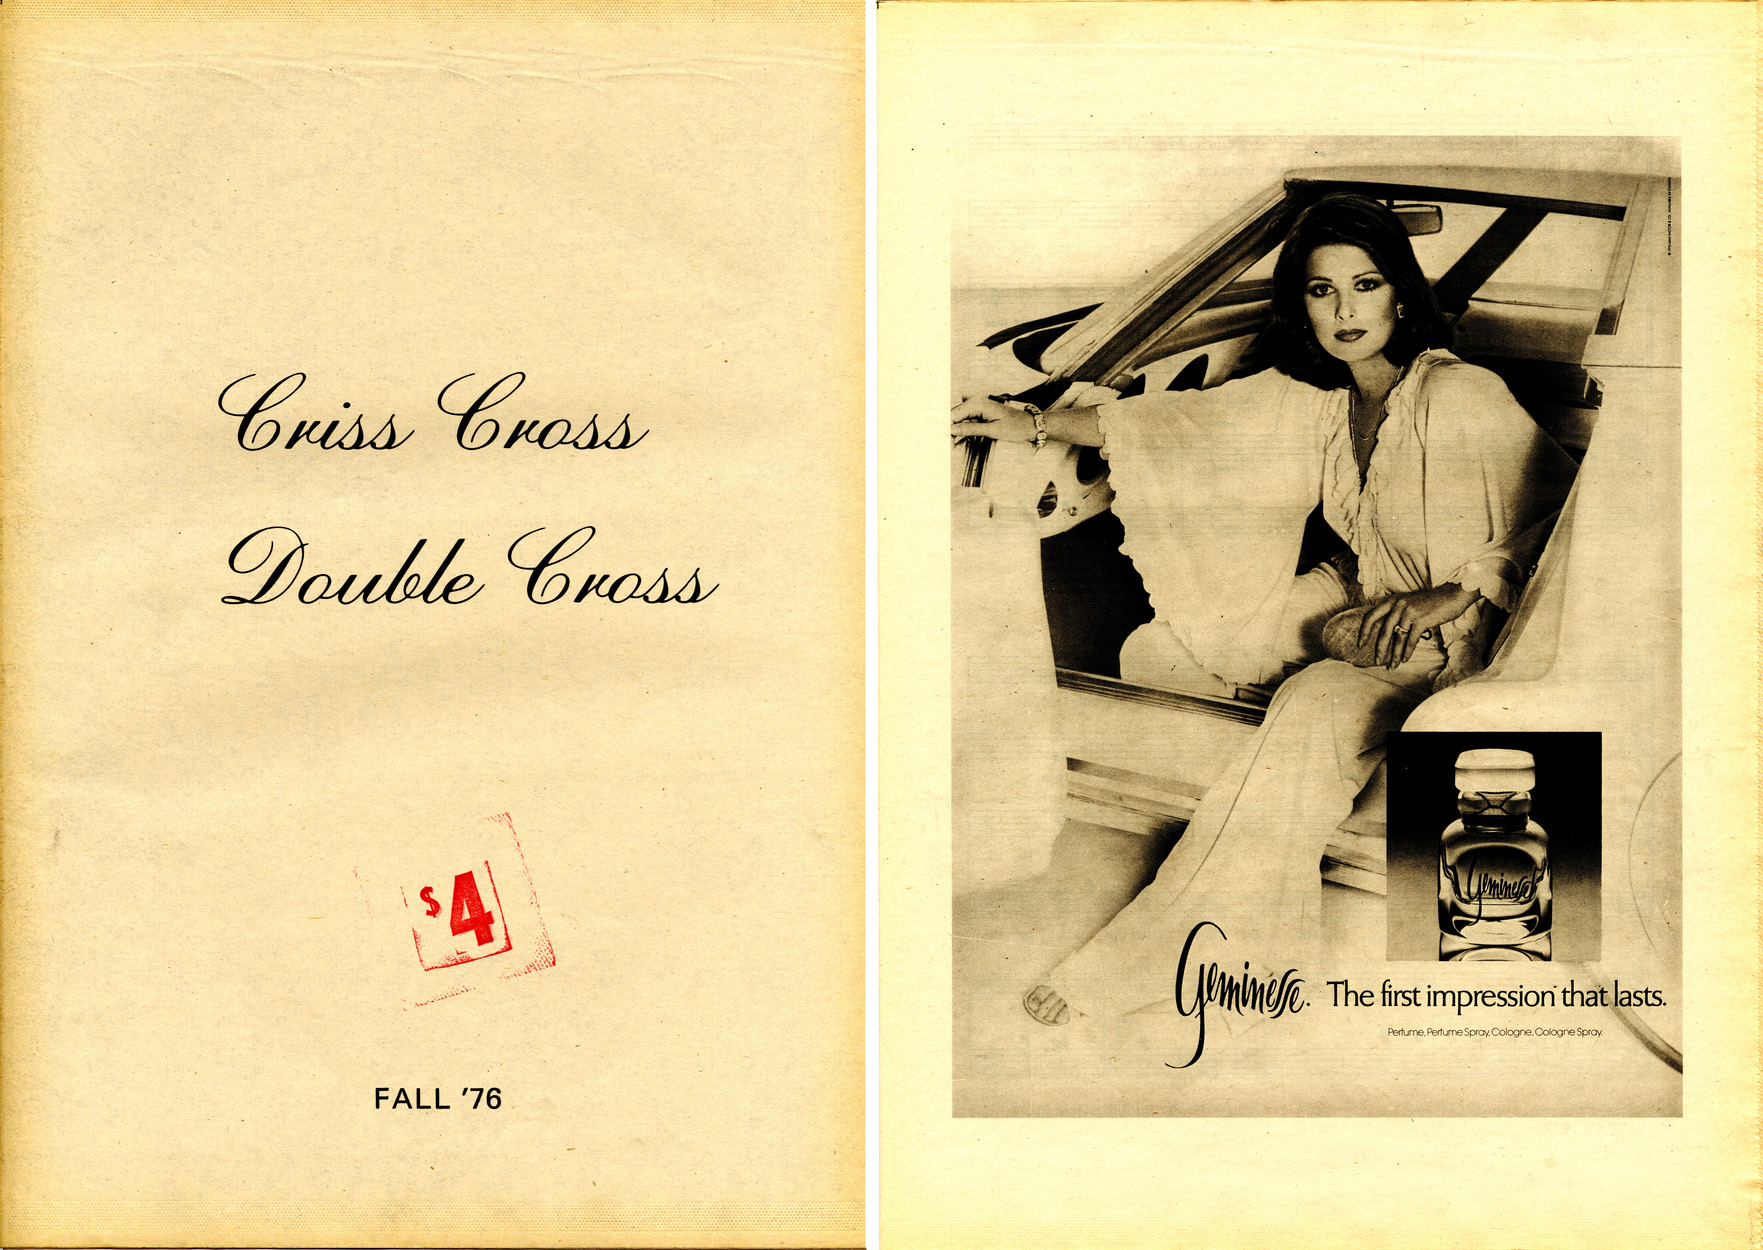 "<em>Criss Cross Double Cross</em>, Issue 1 (Fall 1976). To download a PDF excerpt, <a href=""http://s3.amazonaws.com/eob_texts-production/texts/112/1340667135_CCDC_PDF_SAMPLE_NEW.pdf?1340667135"" target=""_blank"">click here</a>."